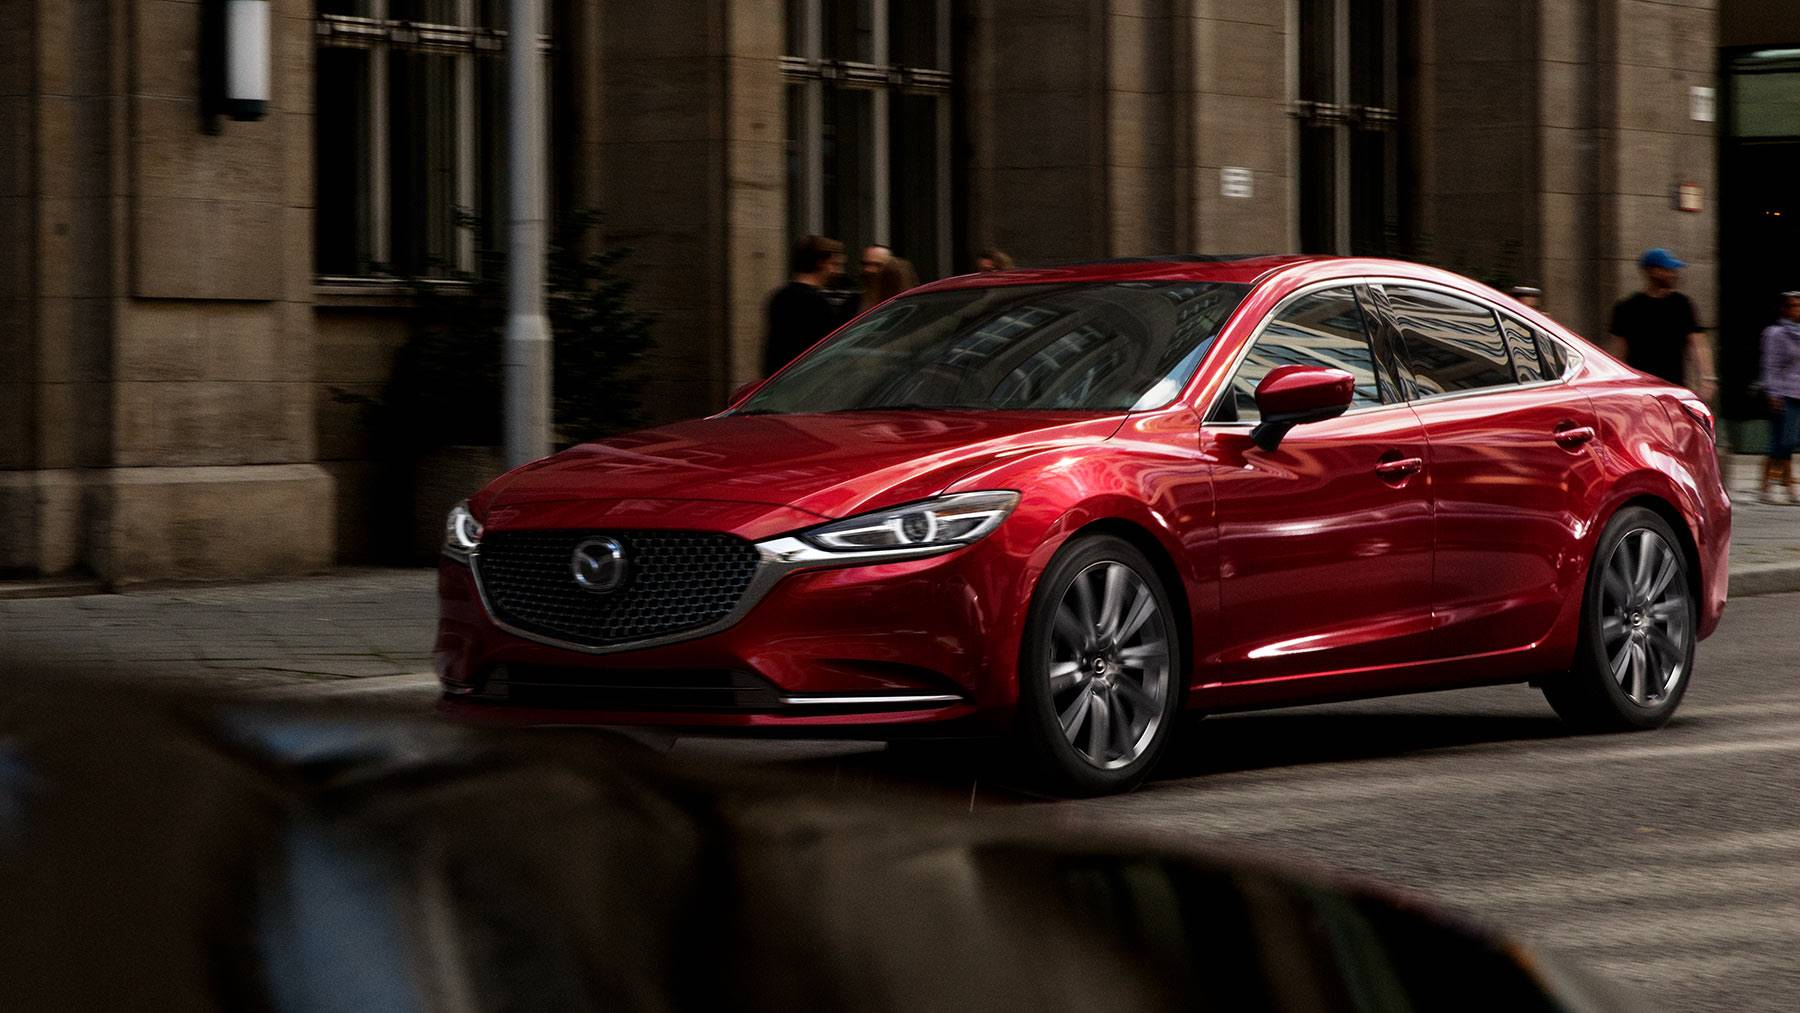 2018 Mazda6 for Sale near Mesa, AZ